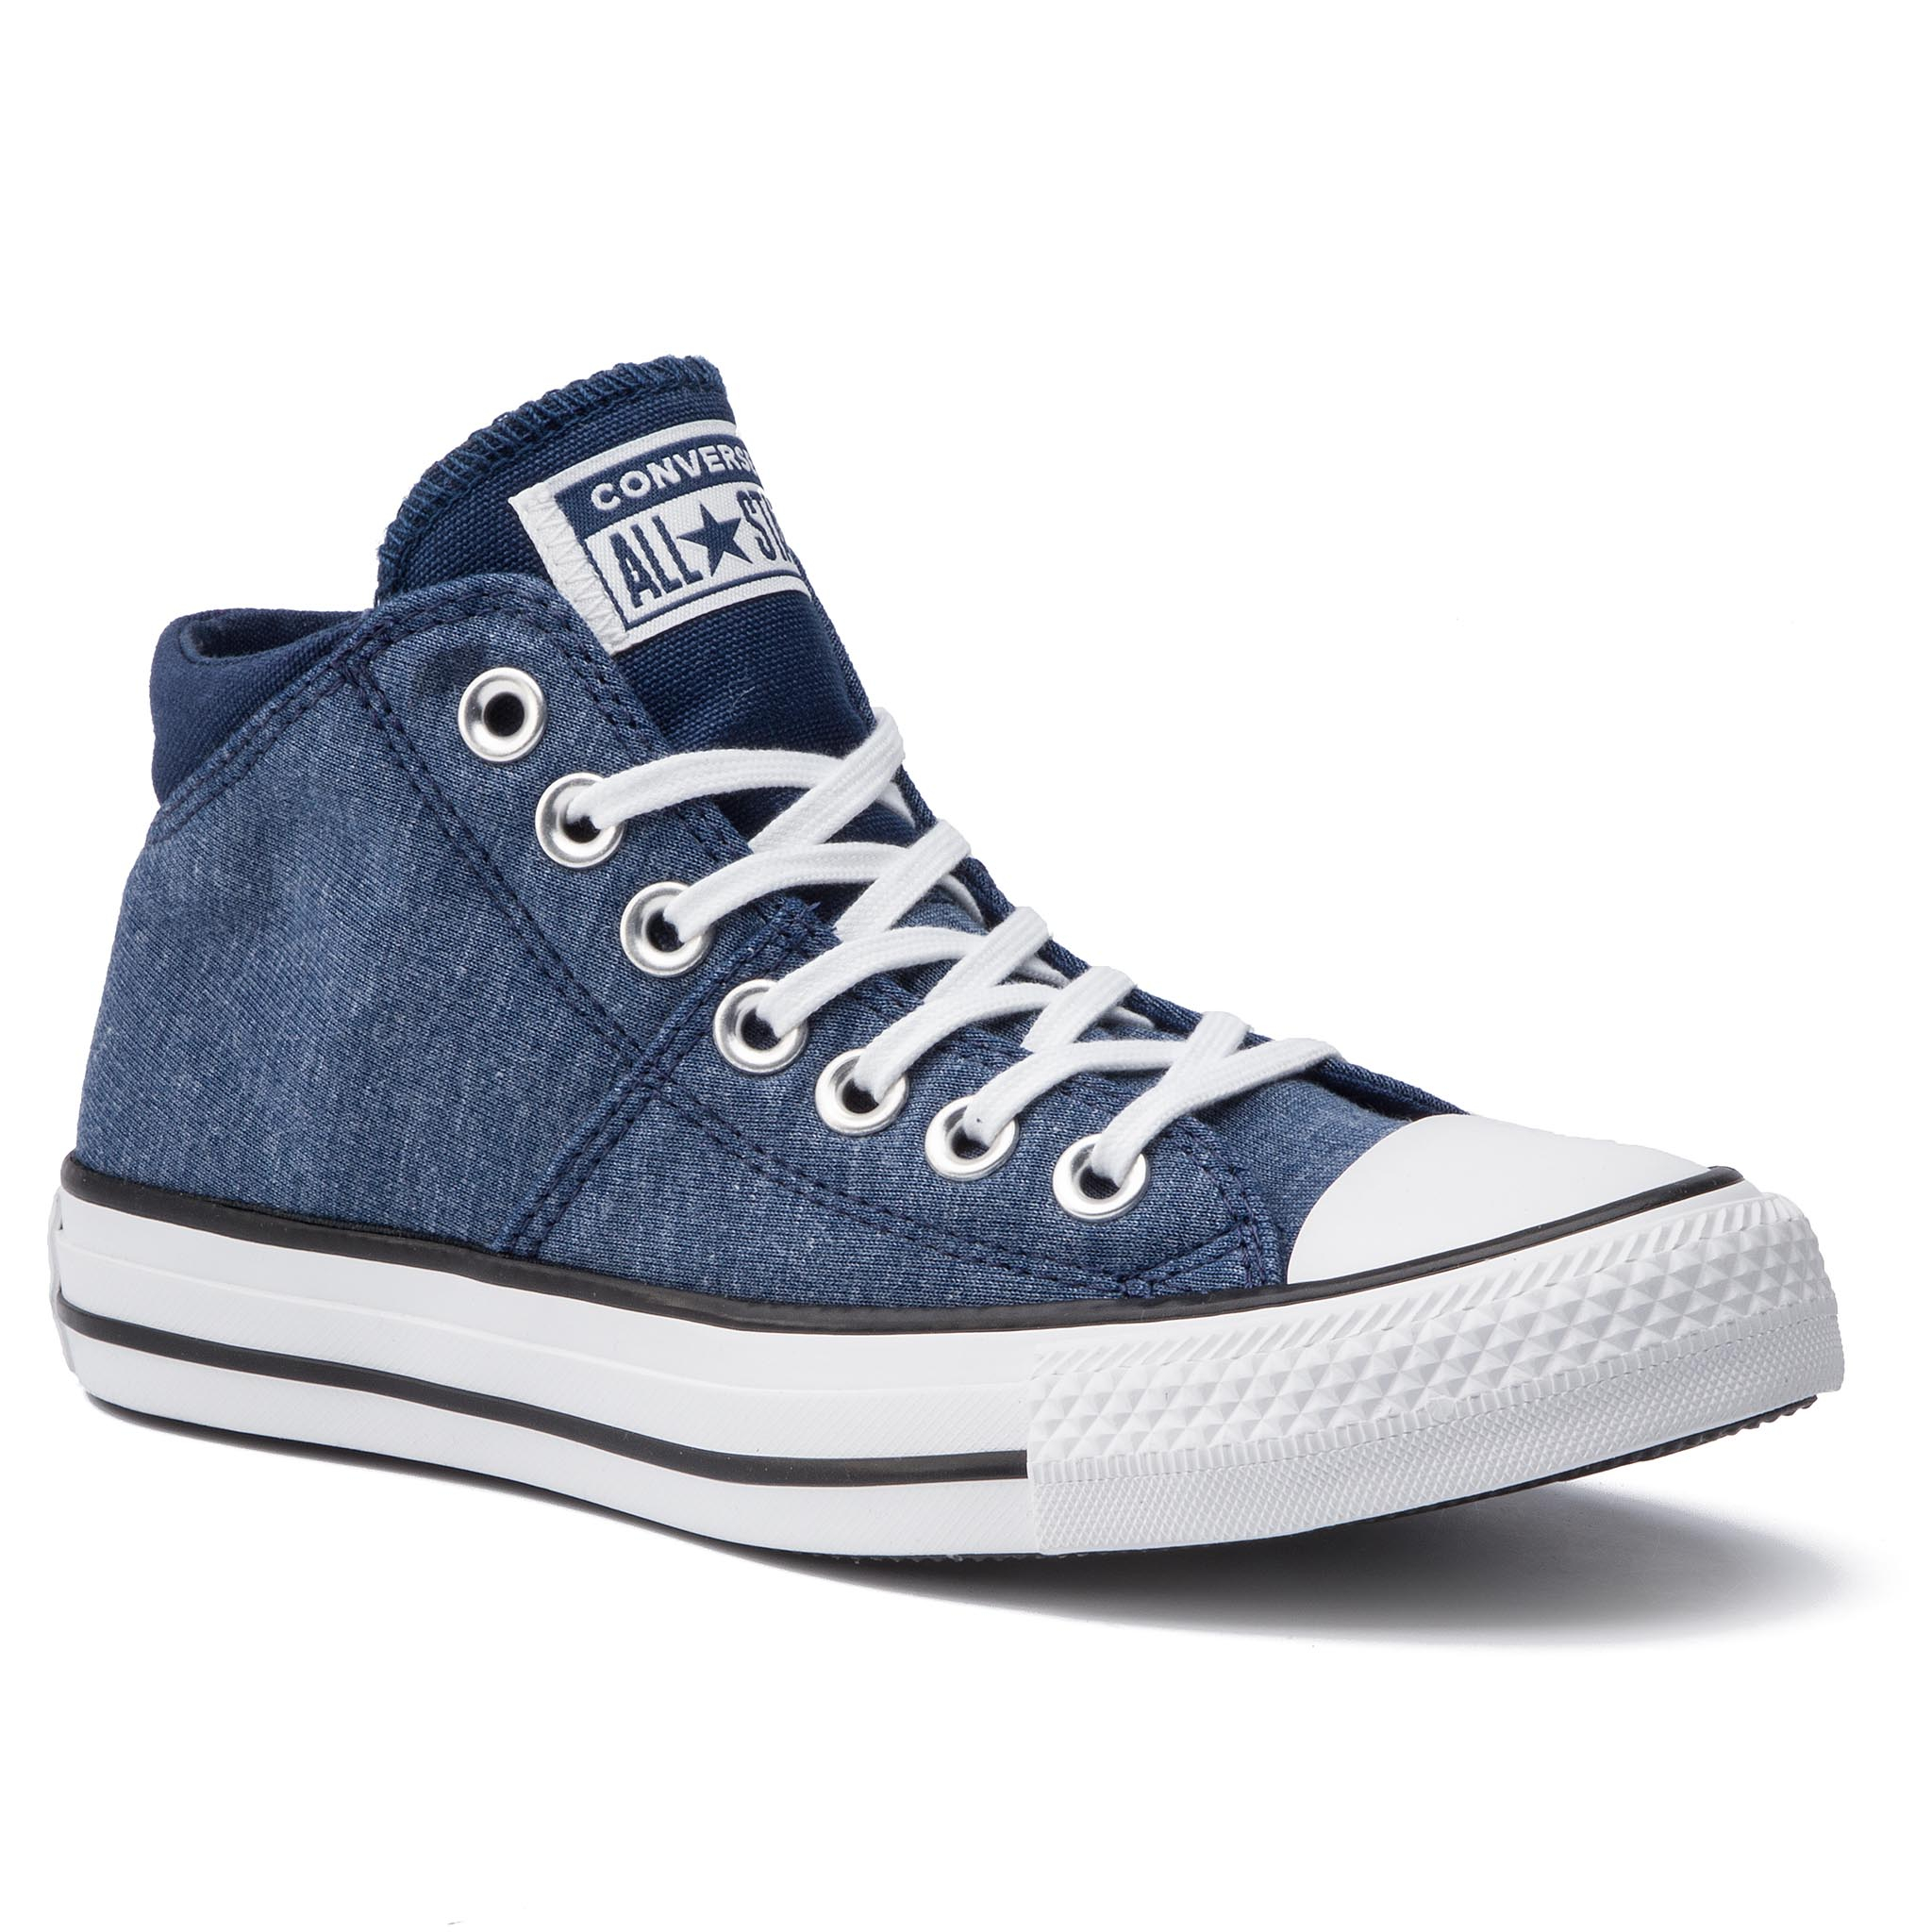 Trampki CONVERSE – Ctas Madison Mid 563448C Navy/White/Black